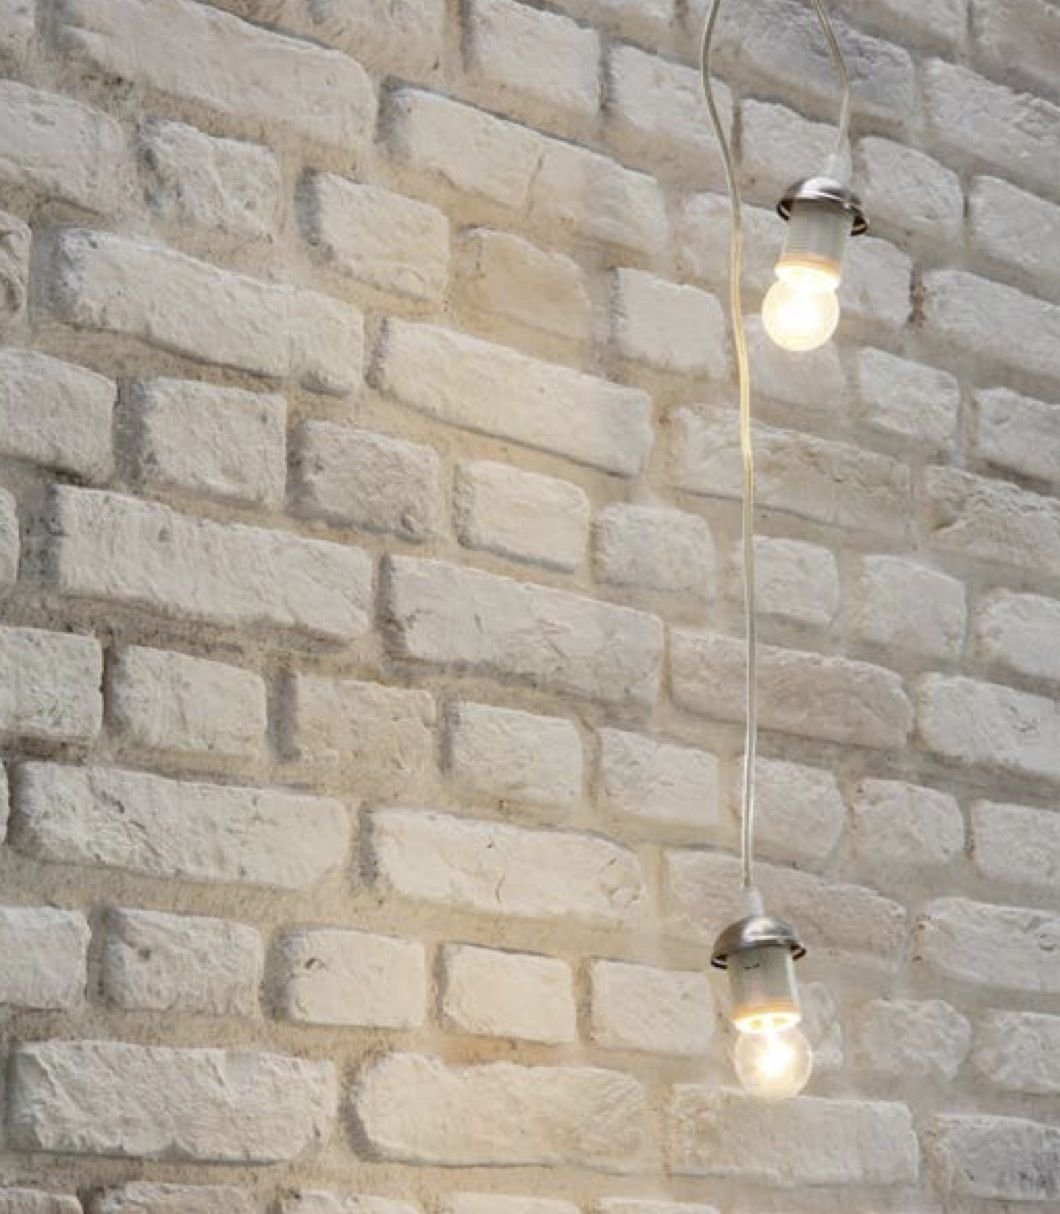 20 White Brick Wall Ideas To Change Your Room Look Great Faux